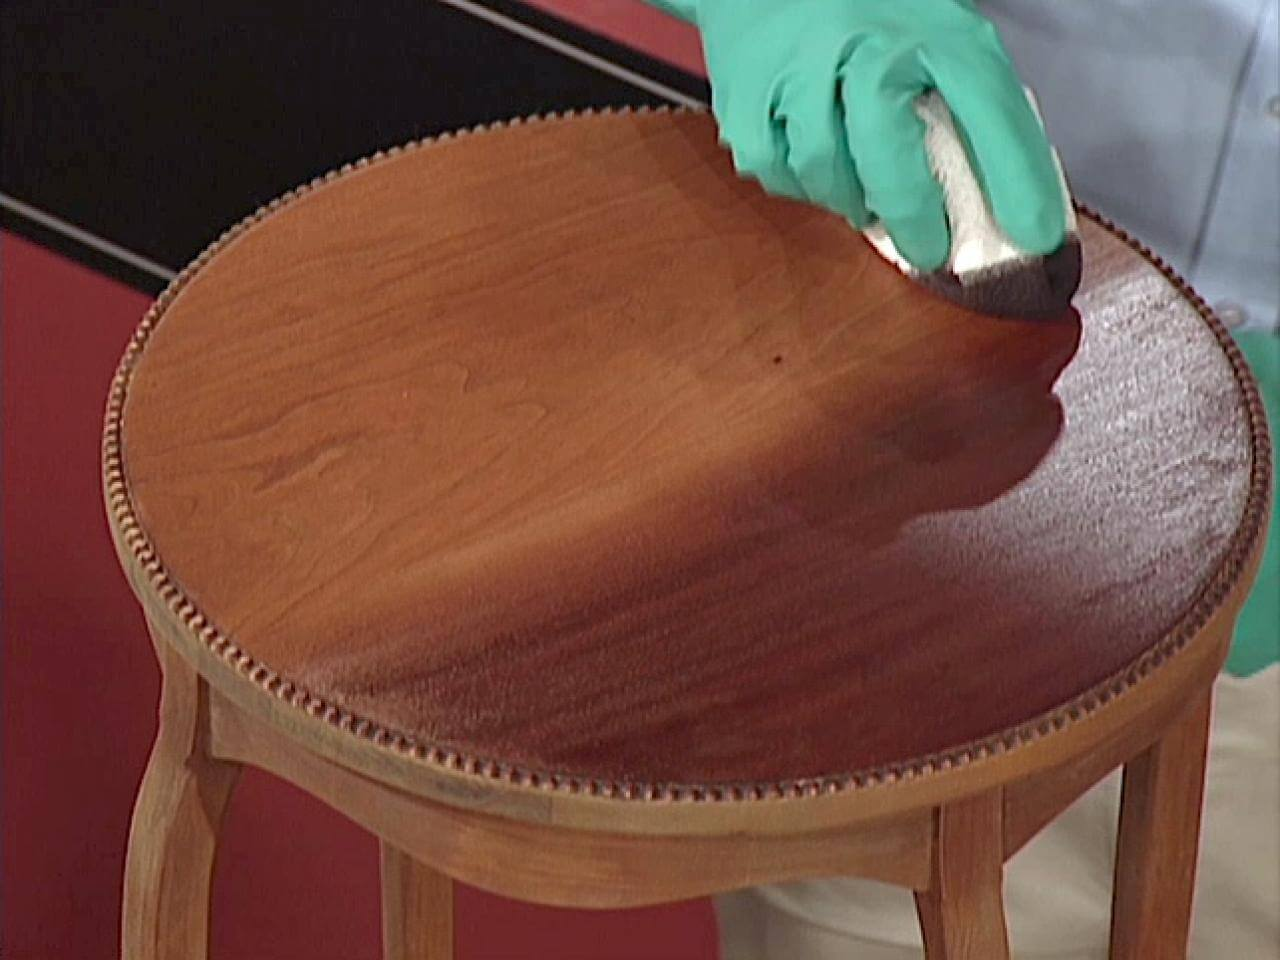 HOW TO MAKE WOOD FURNITURE MORE DURABLE WITH EXTRA PROTECTION